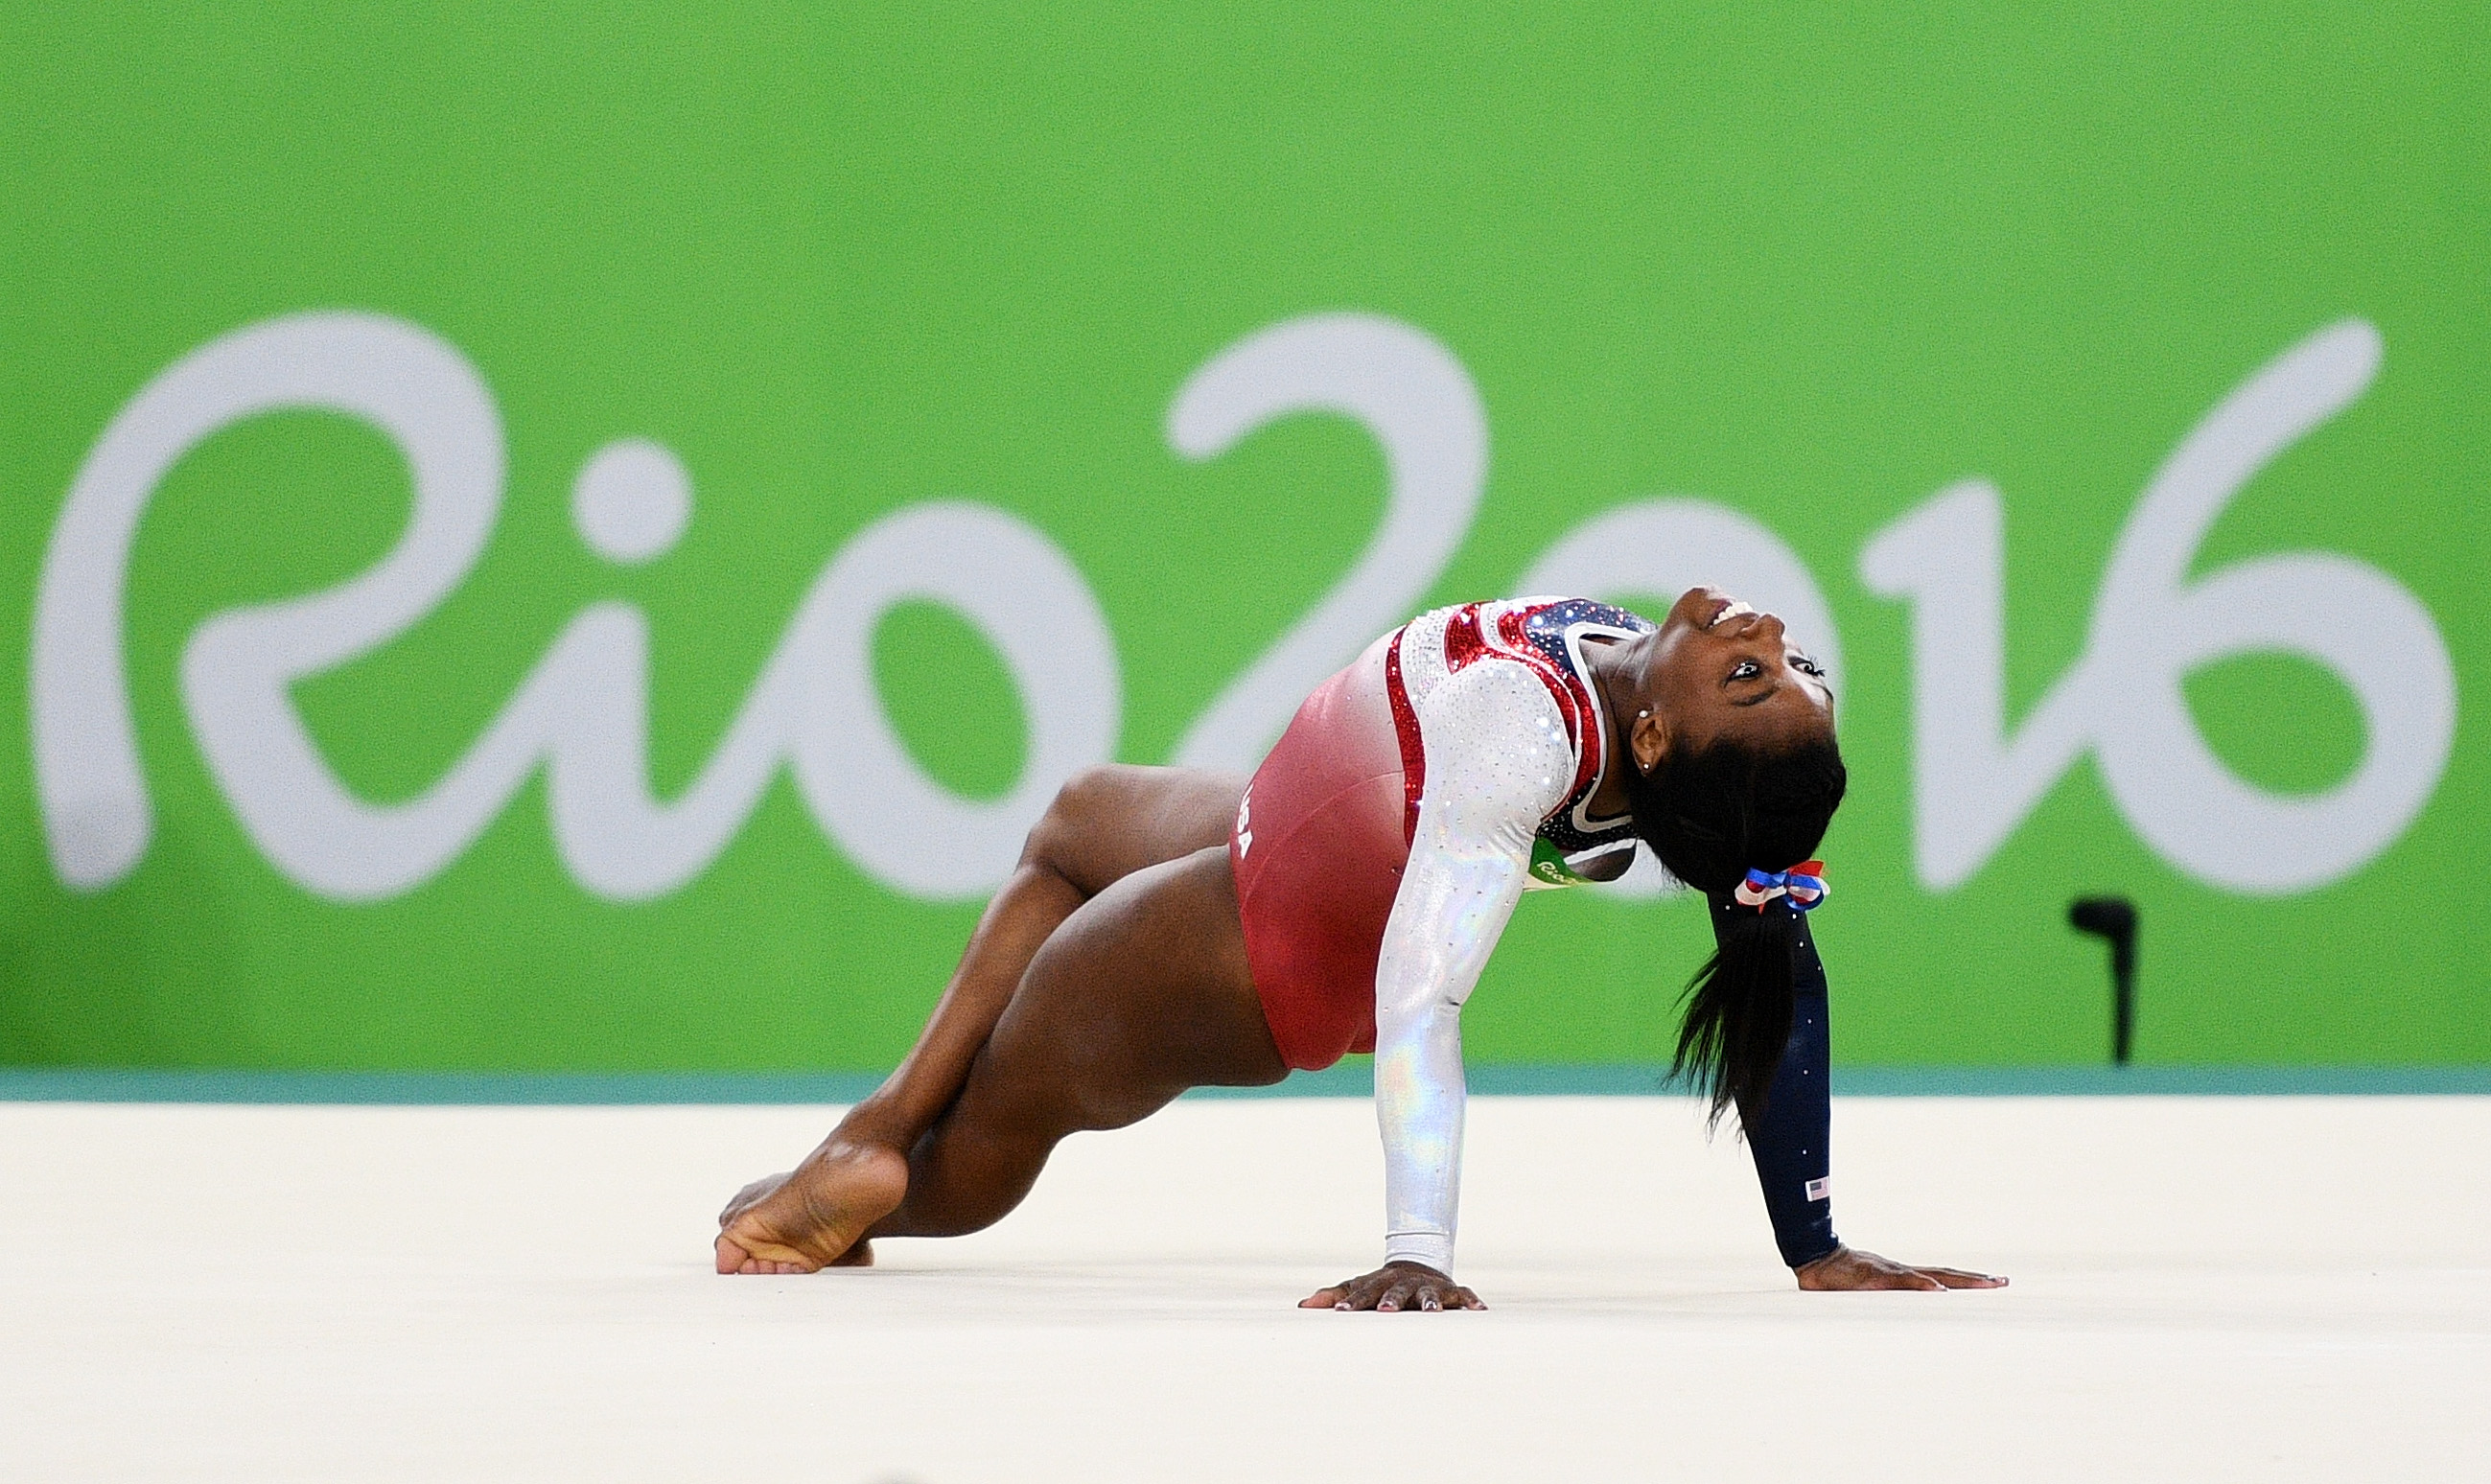 Simone Biles competes on the floor during the artistic gymnastics women's team final on day 4 of the Rio 2016 Olympic Games.